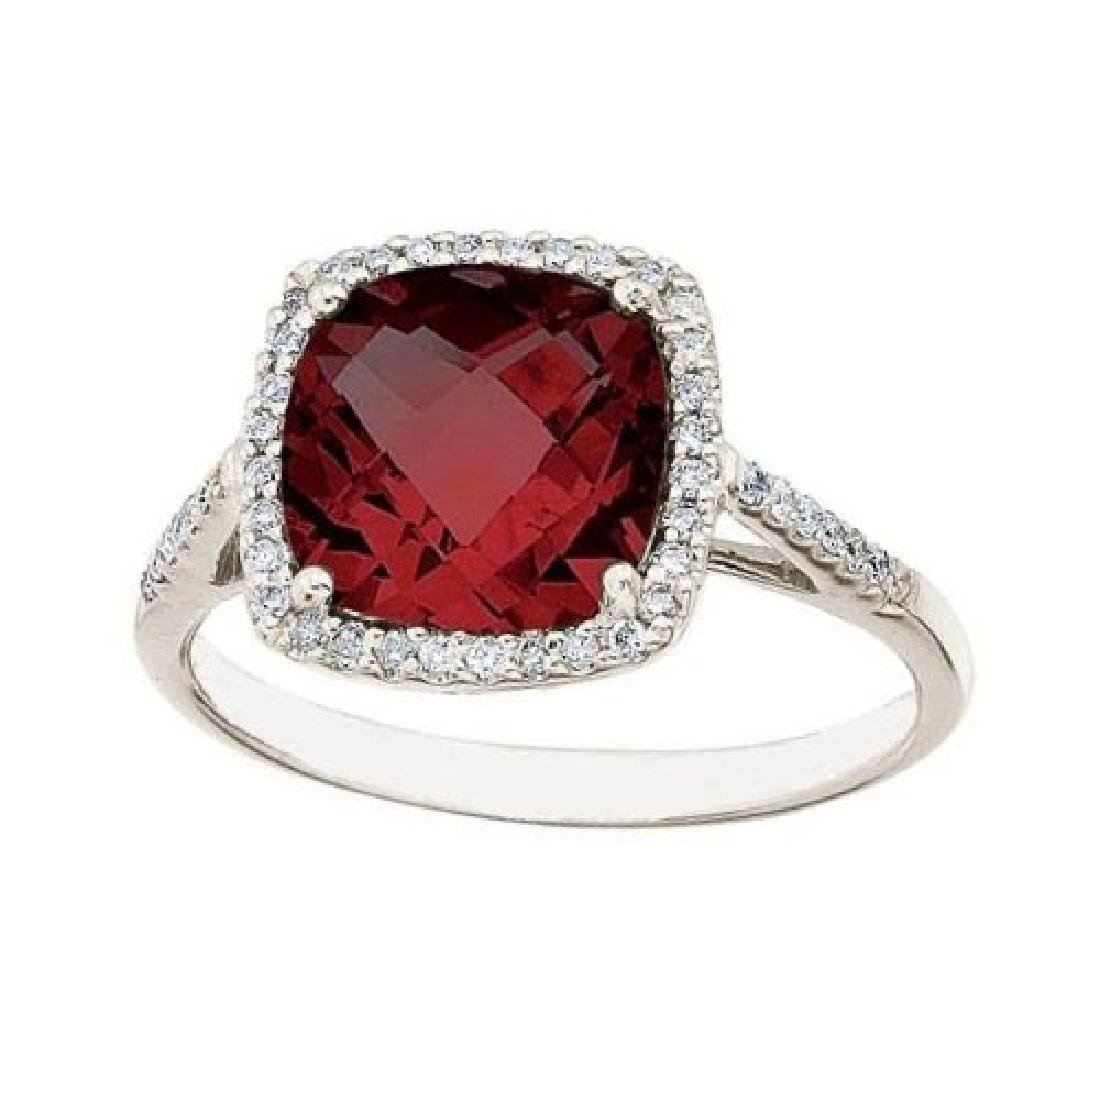 Cushion -Cut Garnet and Diamond Cocktail Ring 14k White